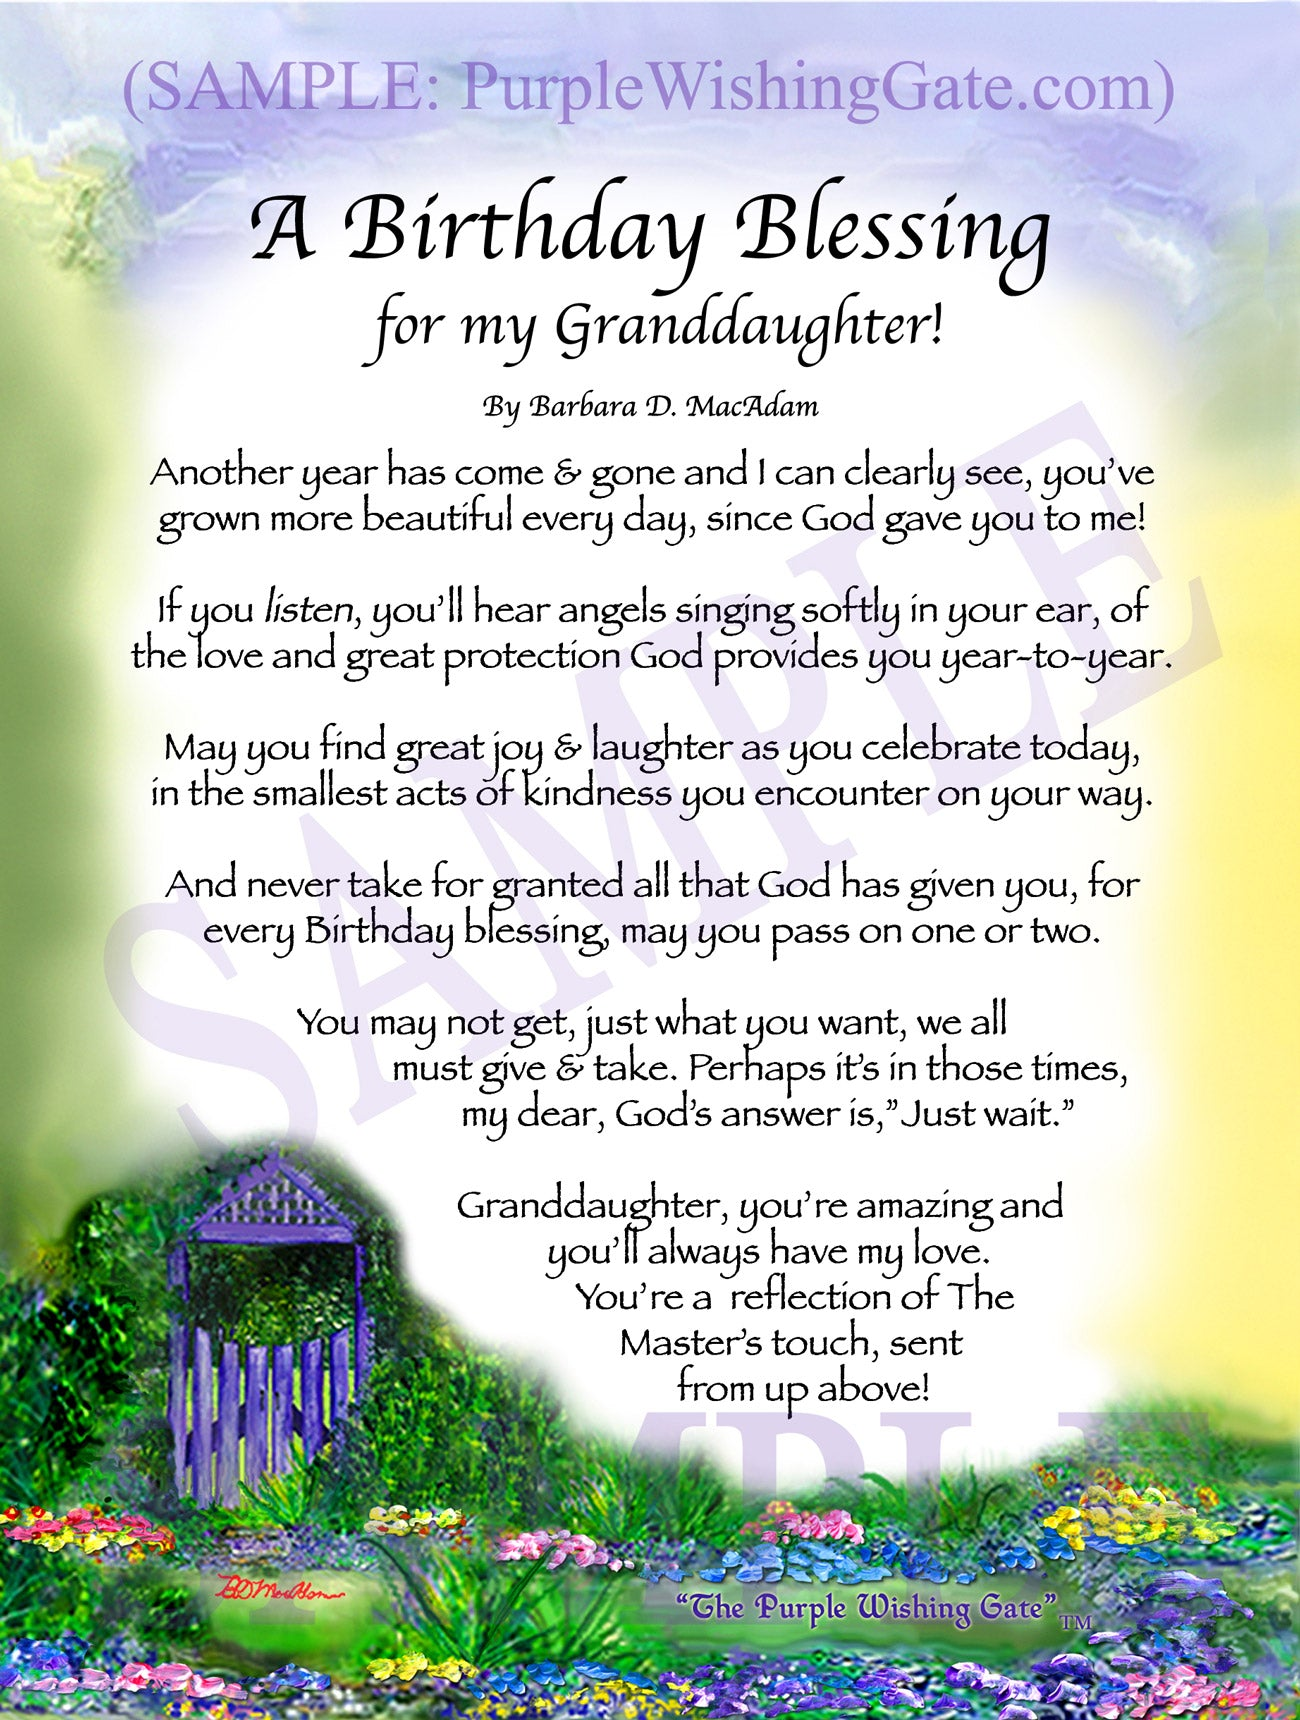 A Birthday Blessing for my Granddaughter! - Birthday Gift - PurpleWishingGate.com